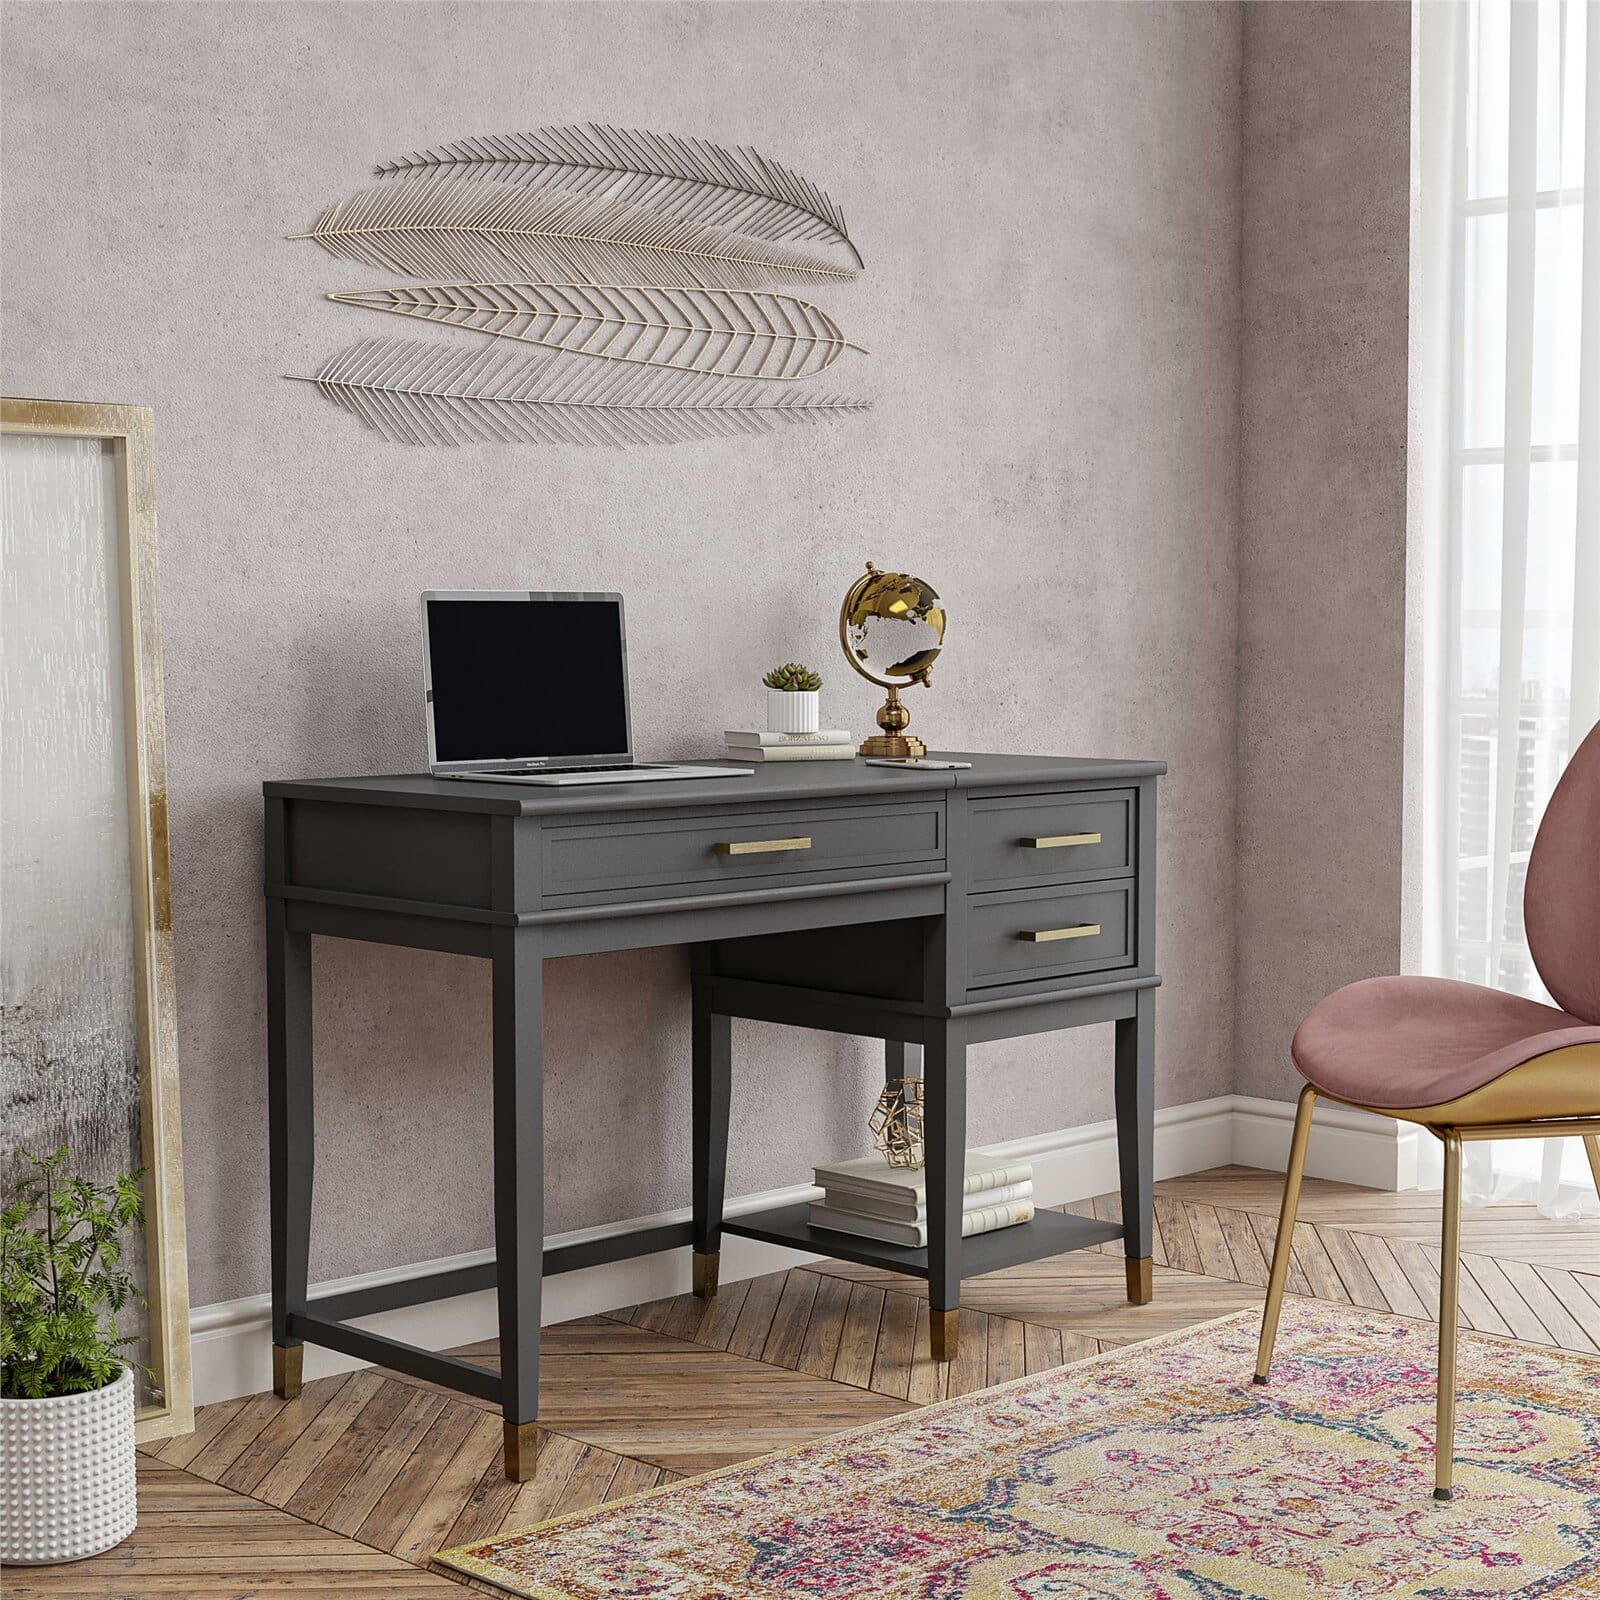 Gray blue desk from Wayfair for this office and bedroom combo space